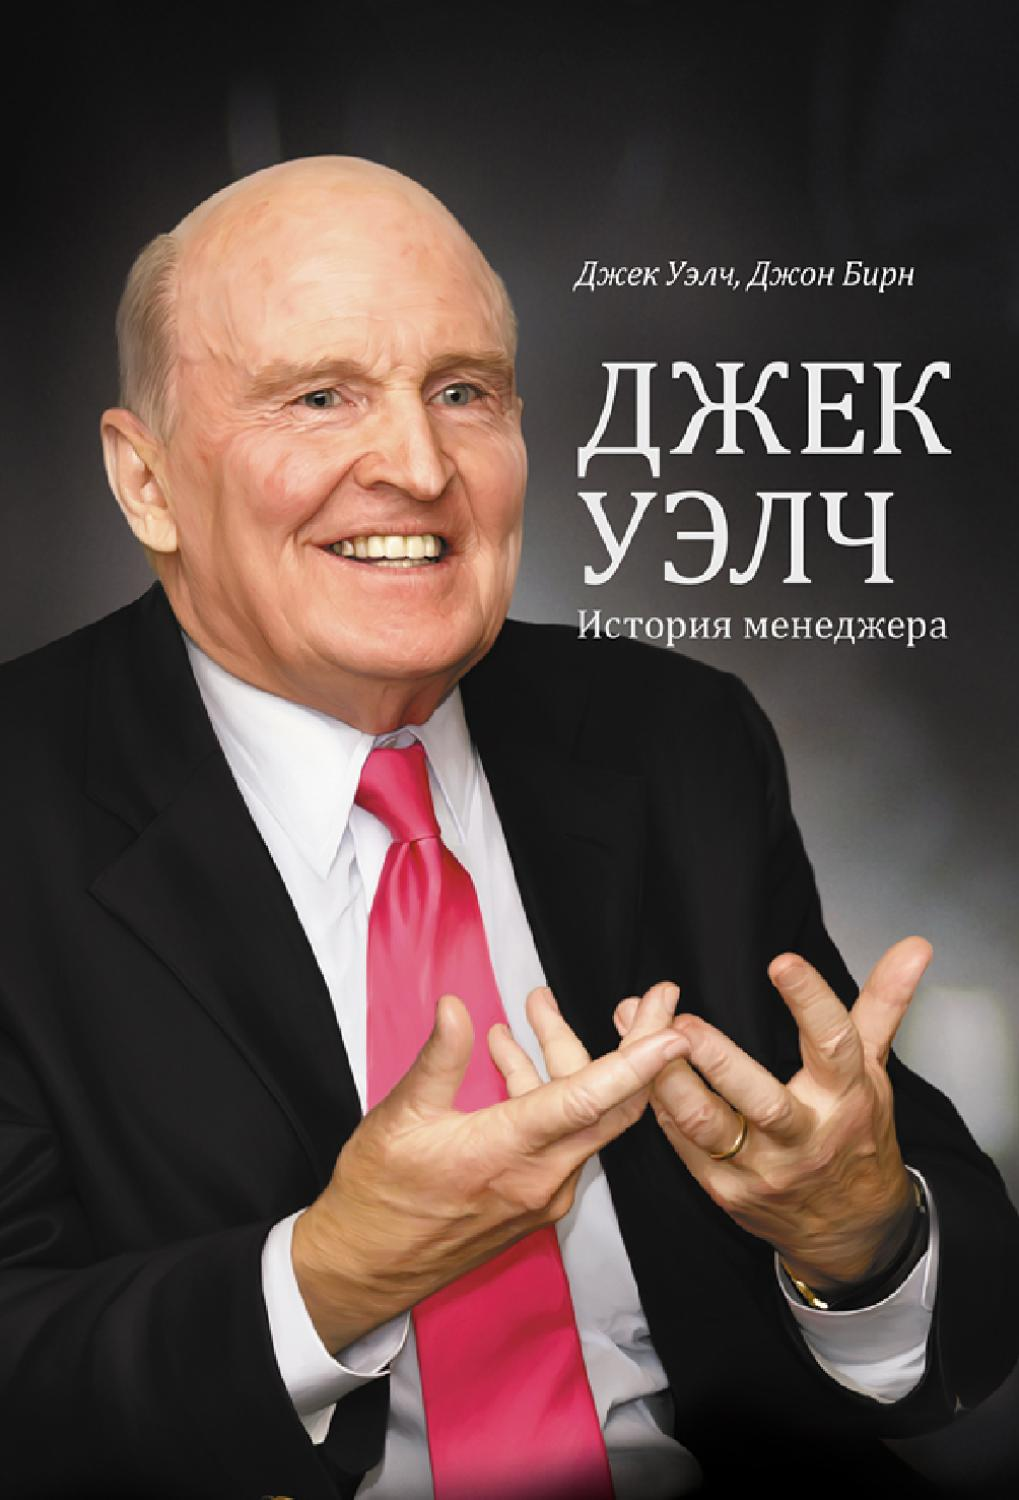 jack welch culture at general electrics Case seventeen jack welch and the general electric management system teaching note prepared by robert m grant synopsis the case examines jack welch's 21-year tenure as chairman and ceo of general electric (ge.